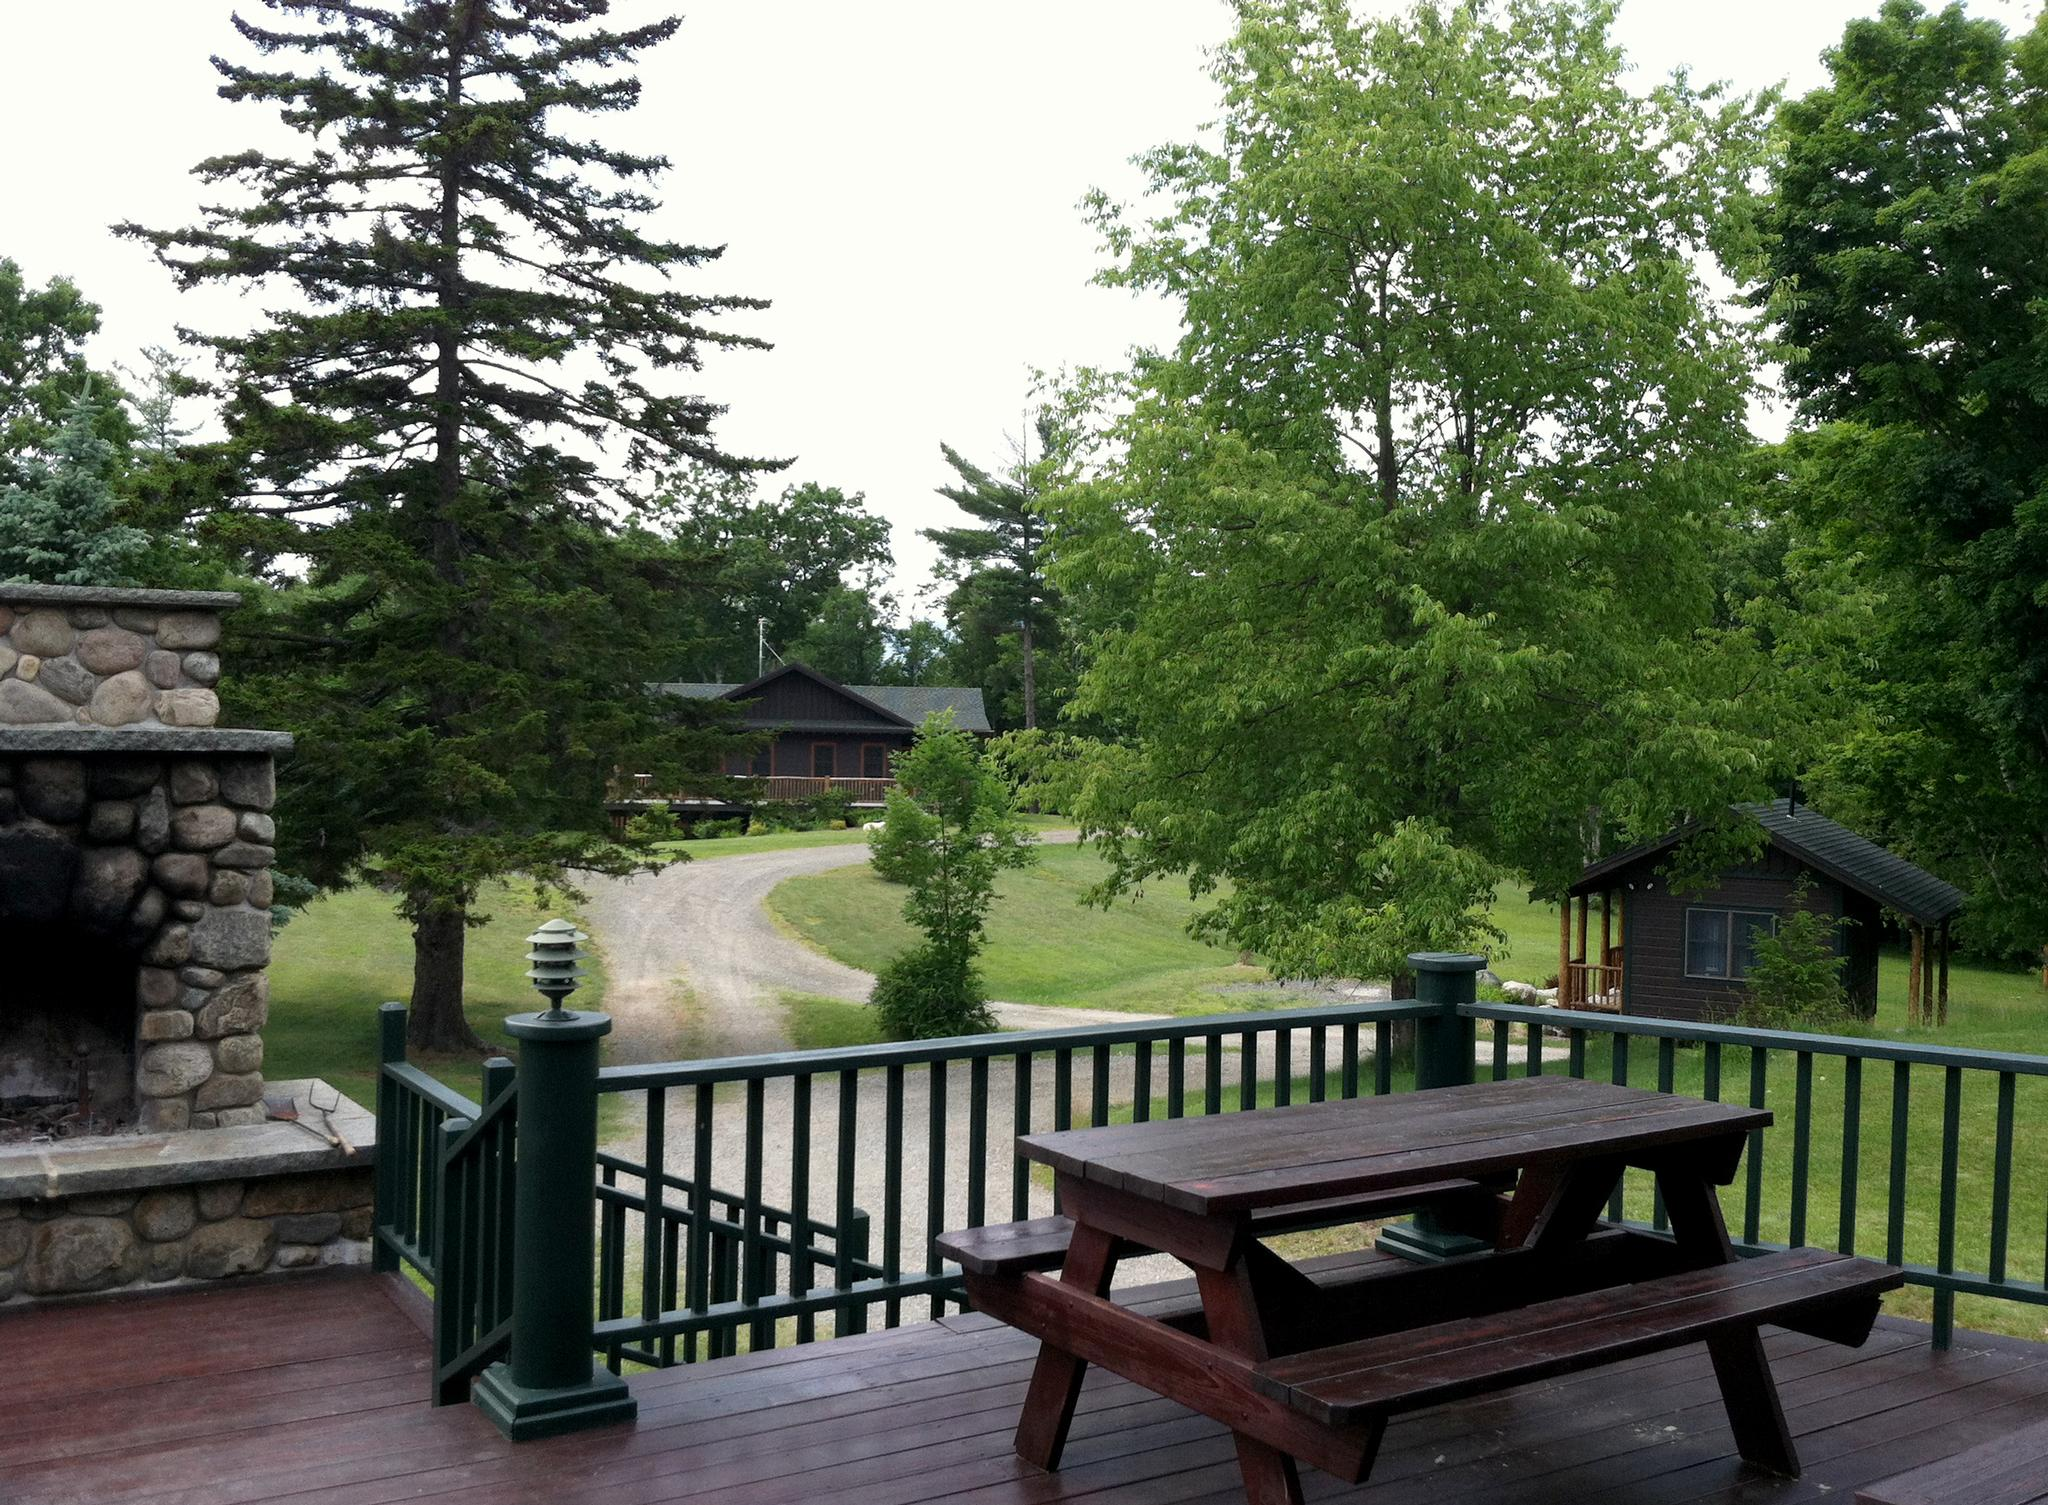 charming the mountain house #7: Shared green space between the buildings at The Mountain House, as seen  from the deck of The Main House, which also serves as our outdoor classroom  and ...